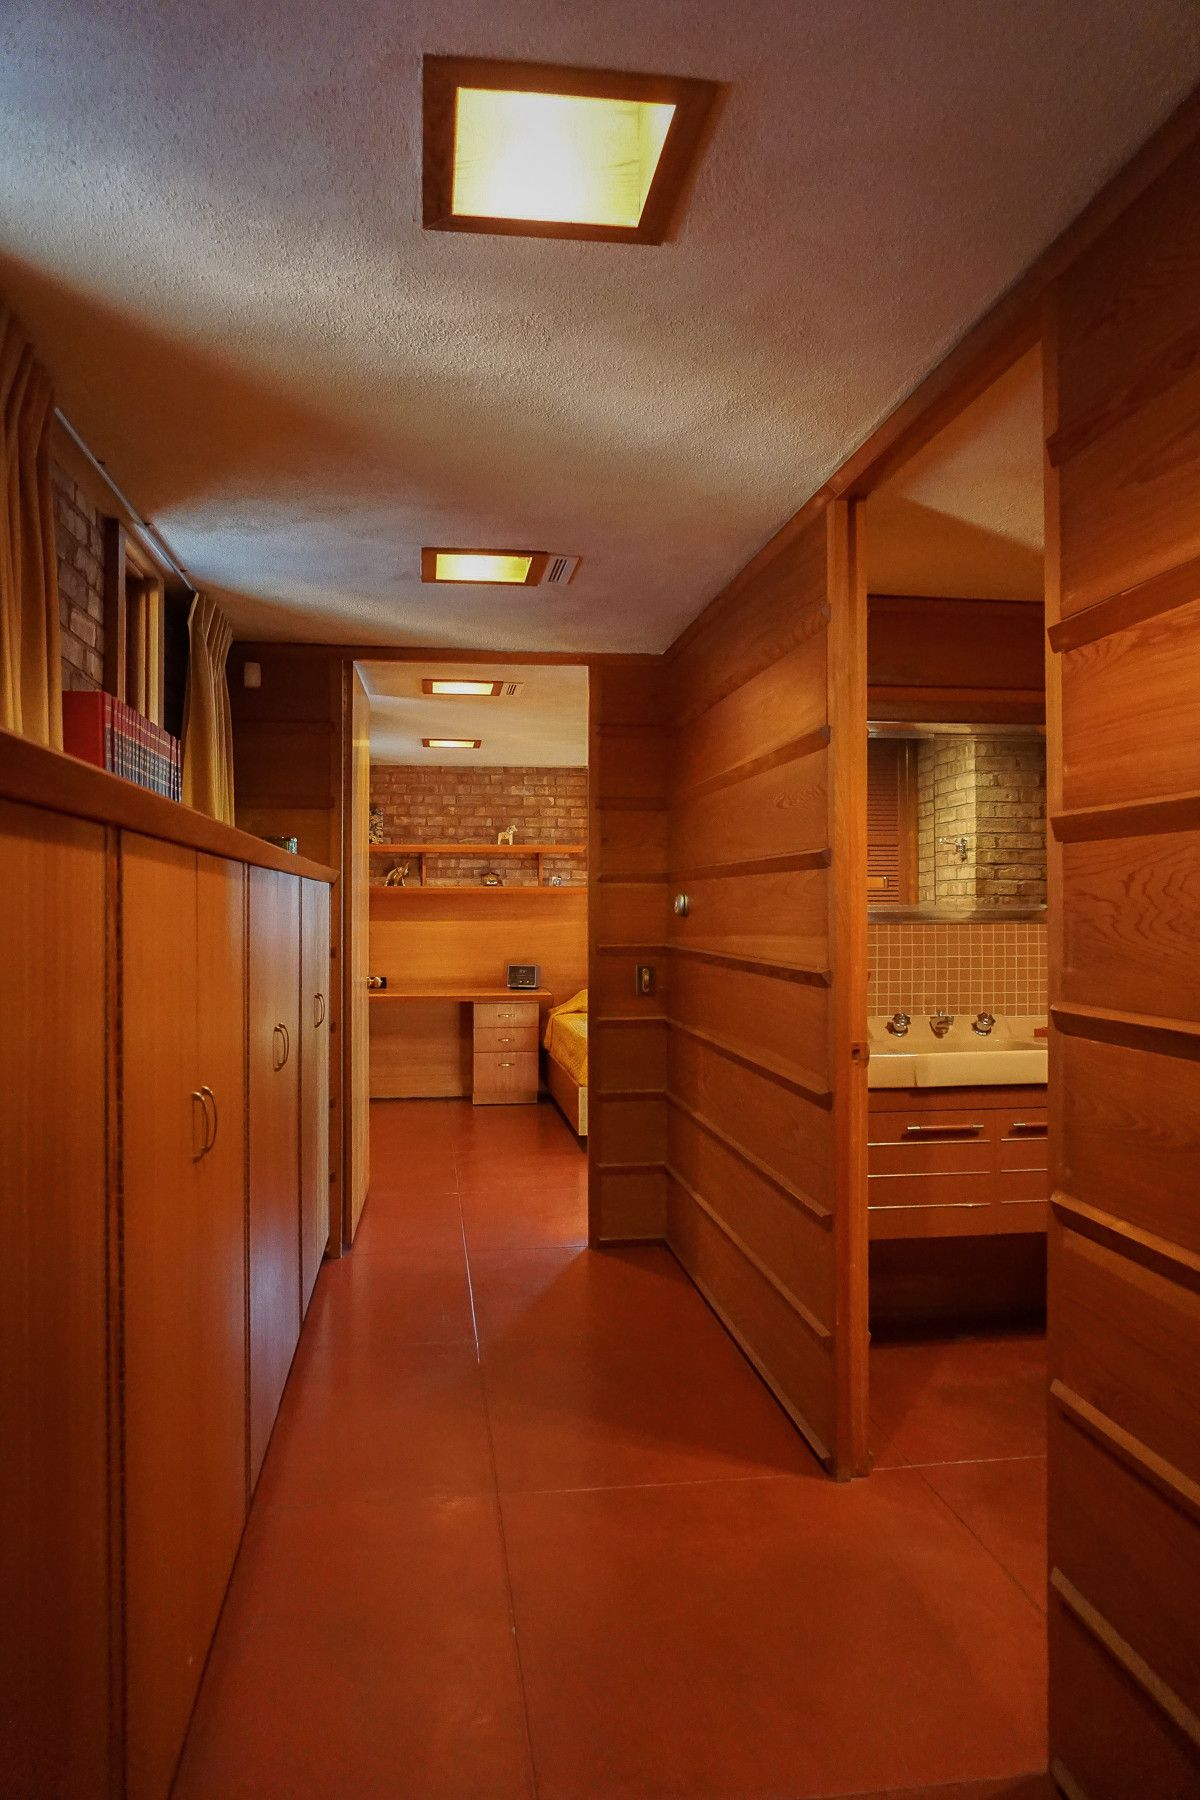 Kenneth laurent house rockford illinois 1951 usonian style ada accessible frank lloyd wright